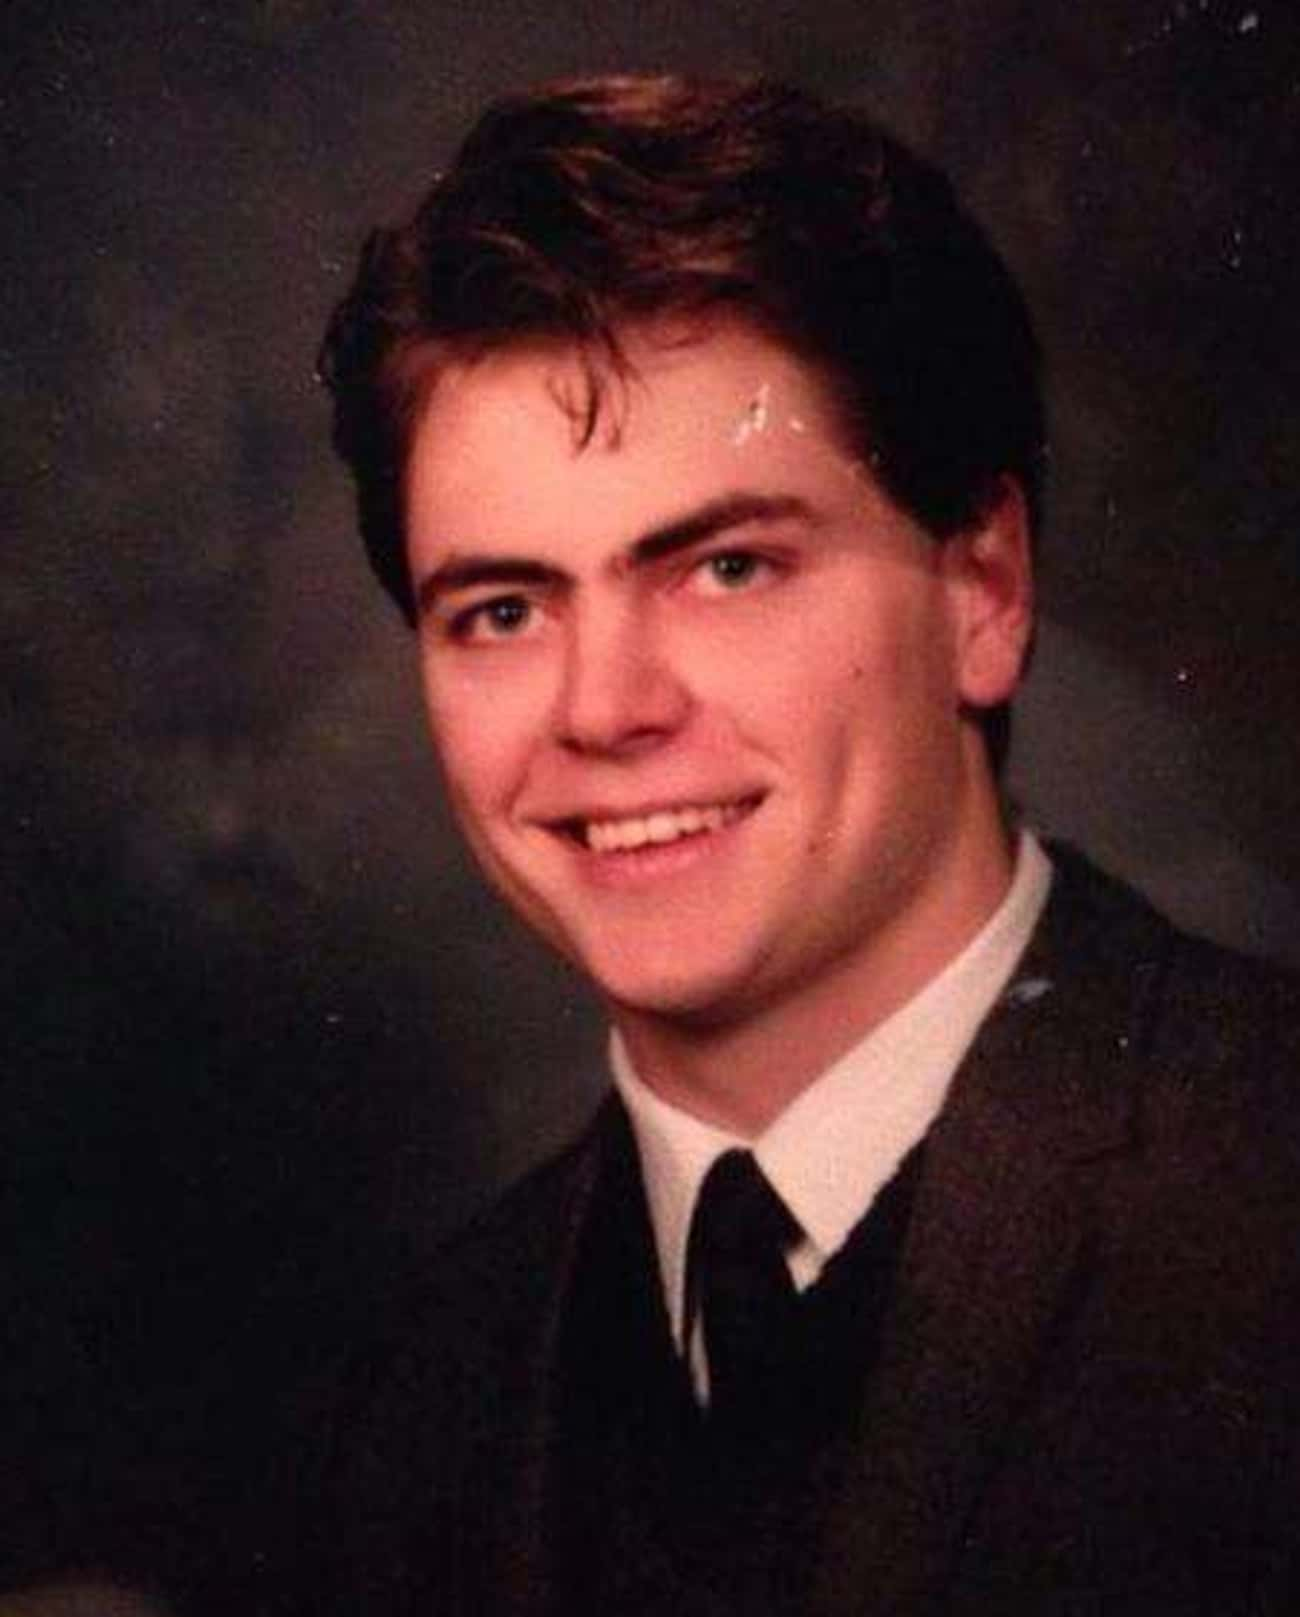 Young Nick Offerman High School Yearbook Photo